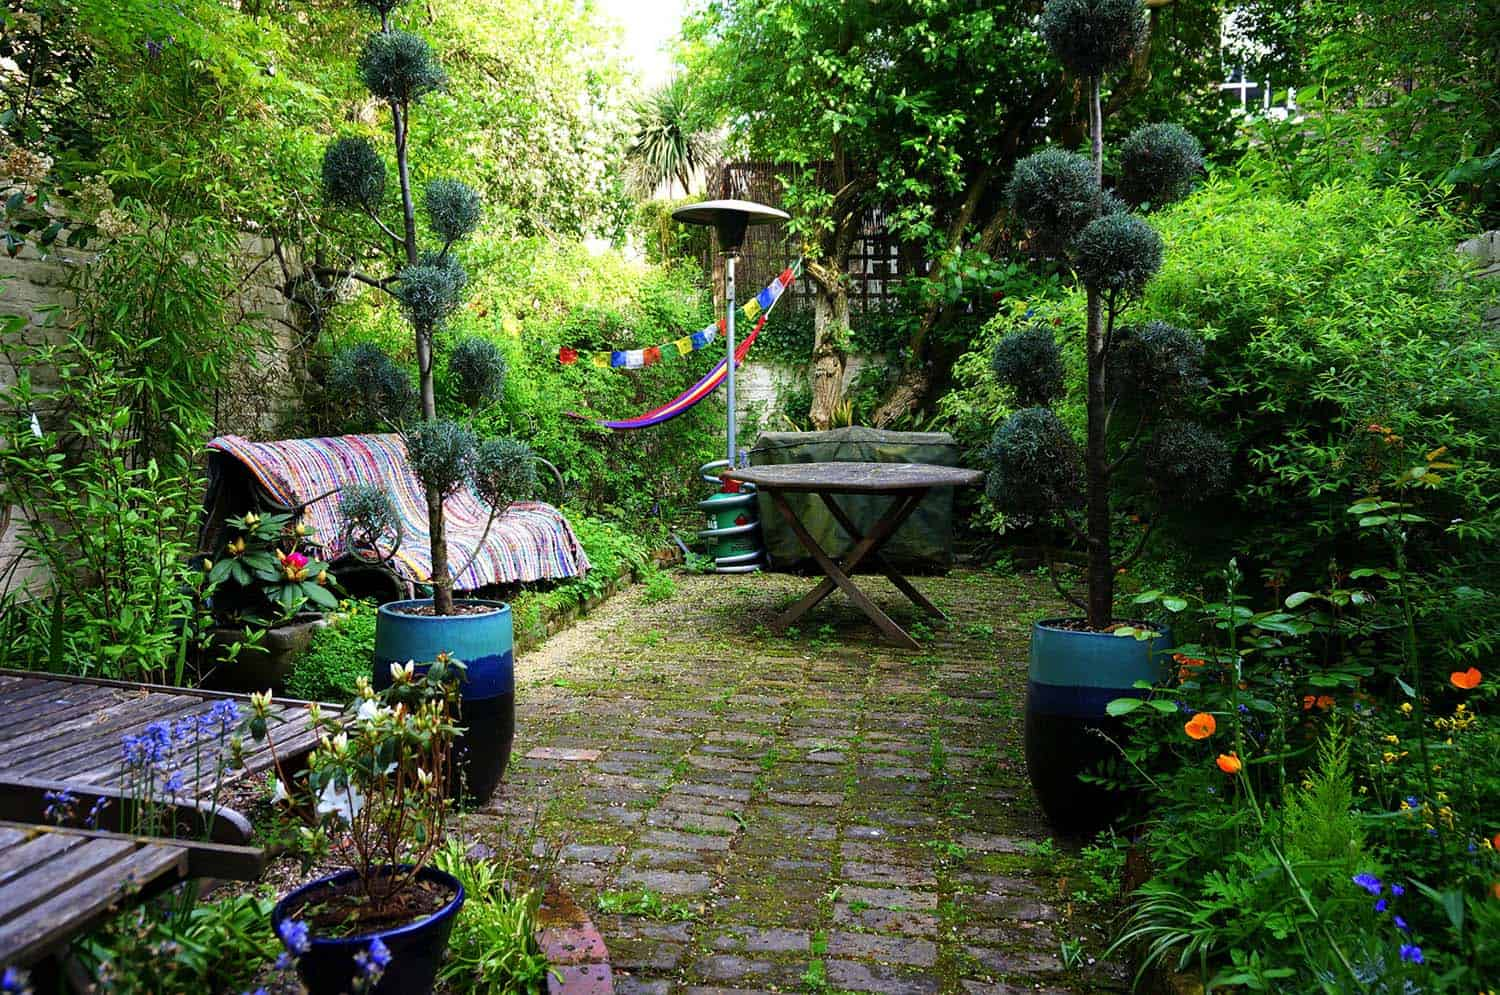 Bohemian garden with mossy cobblestones and slightly overgrown flower beds